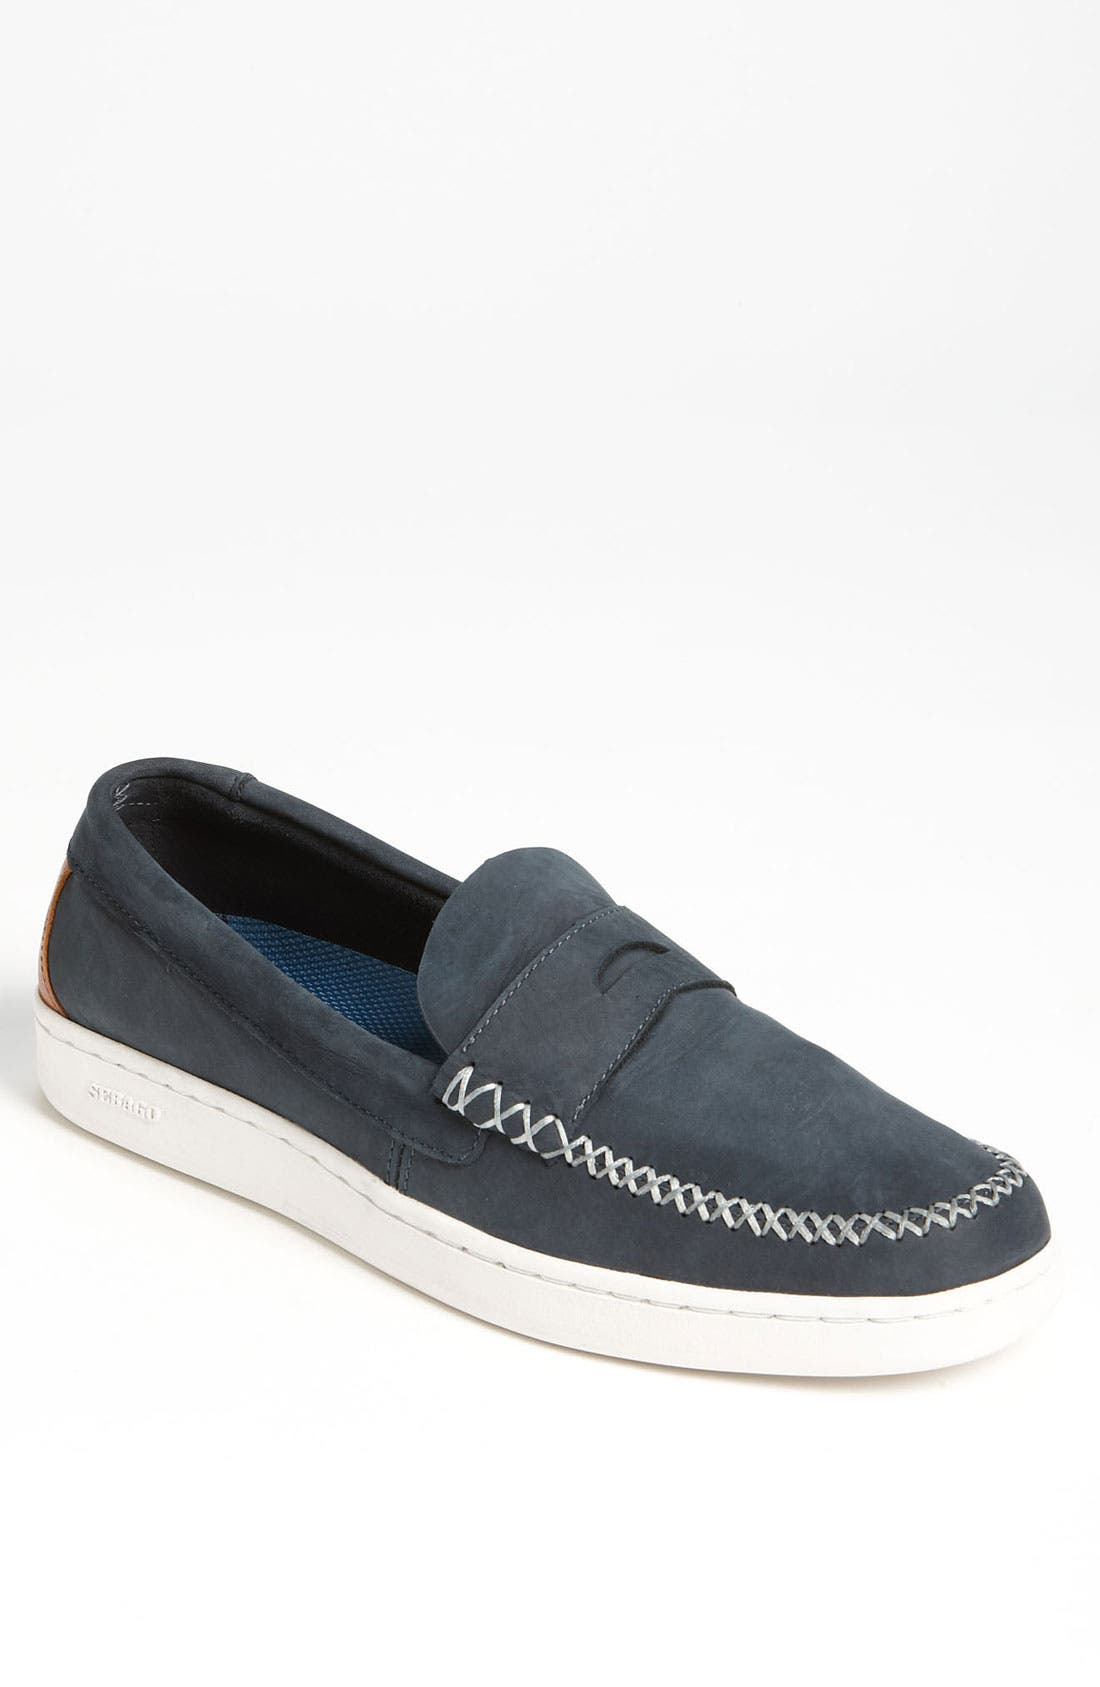 Main Image - Sebago 'Wentworth Classic' Loafer